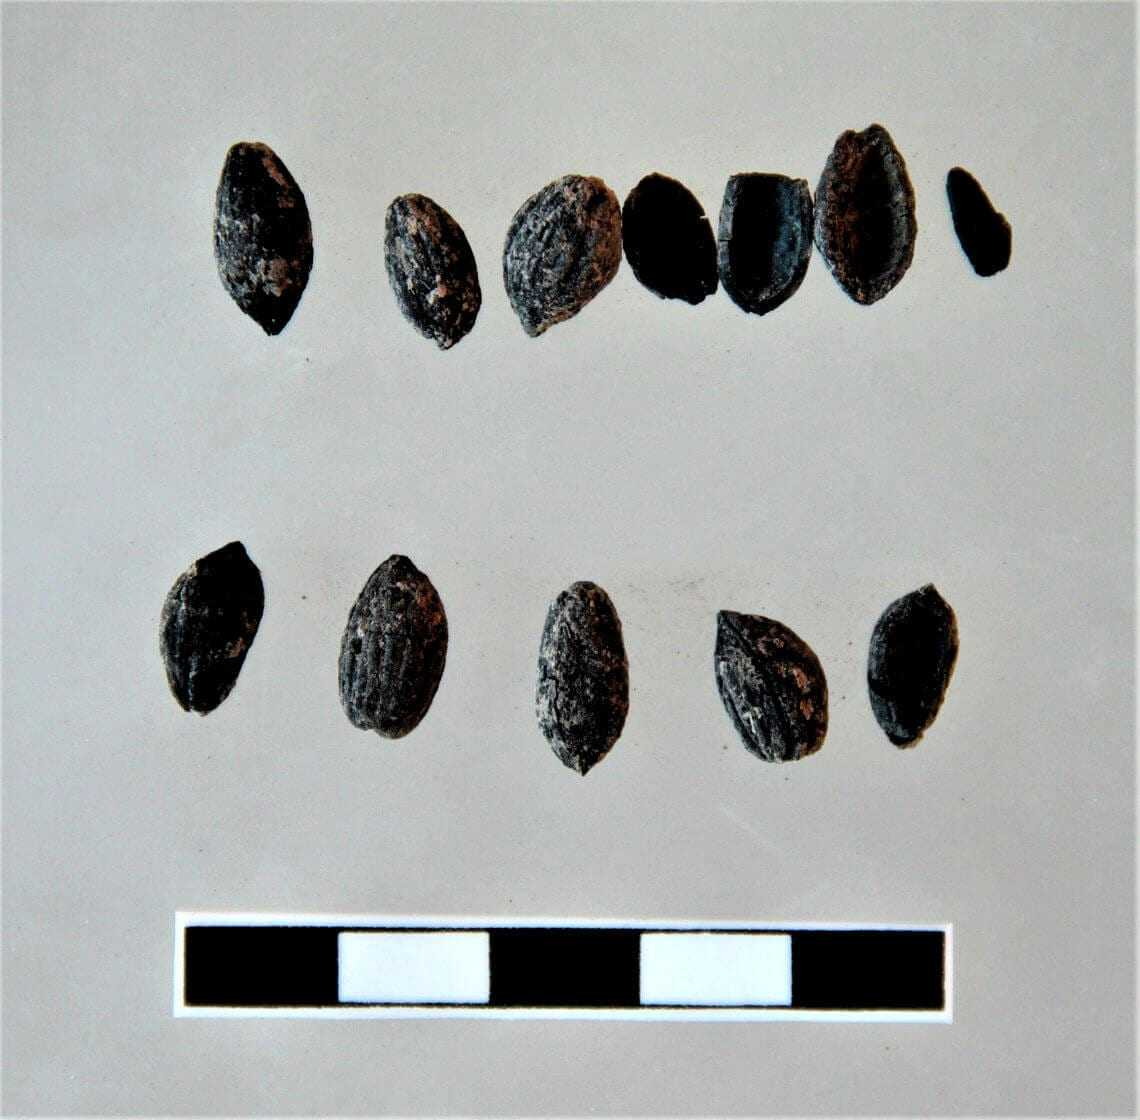 millenary-olive-seeds-found-in-important-archeological-site-in-turkey